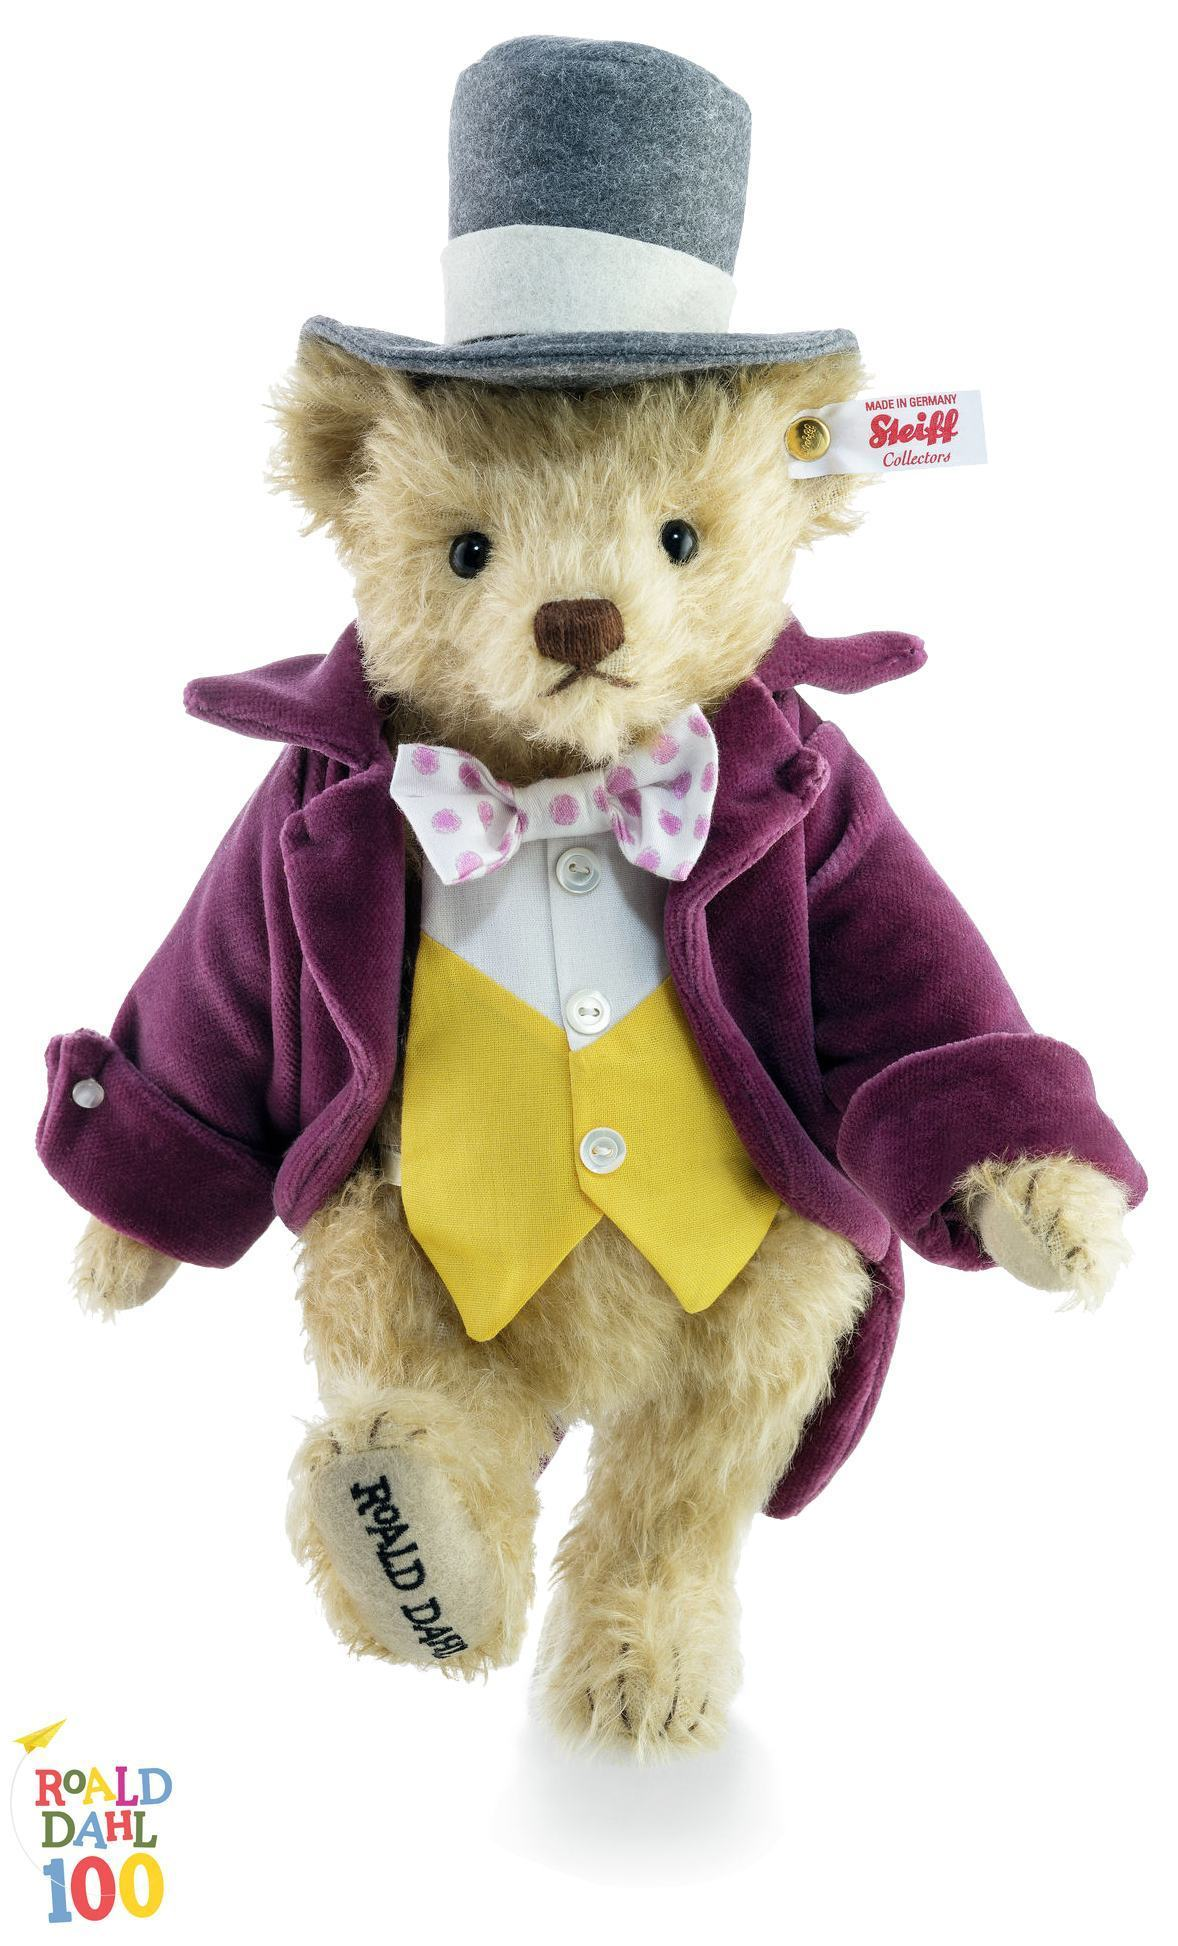 Urso-de-Pelucia-Willy-Wonka-Teddy-Bear-Fantastica-Fabrica-de-Chocolate-03